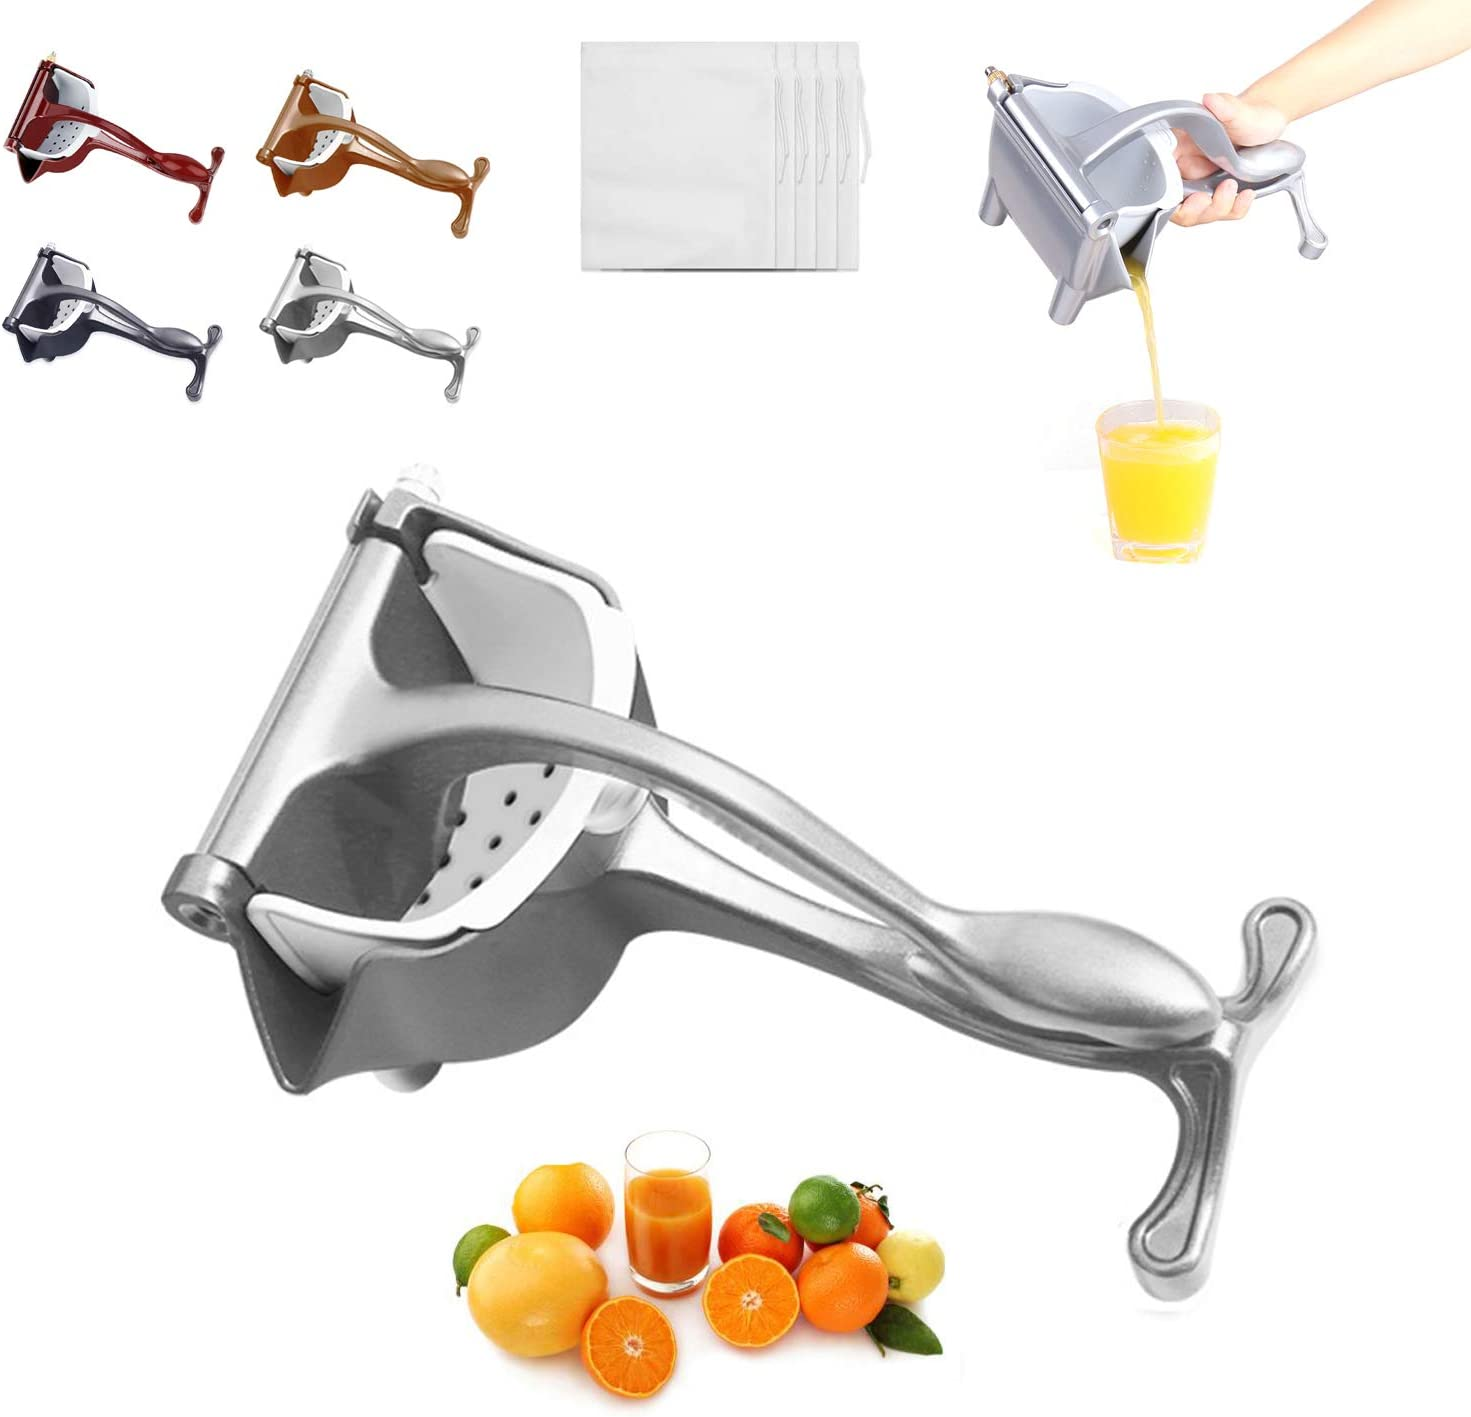 Lemon Squeezer High Quality Juicer - Stainless Steel Hand Juicer Citrus Lime Squeezer Manual Juicer (Silvery)